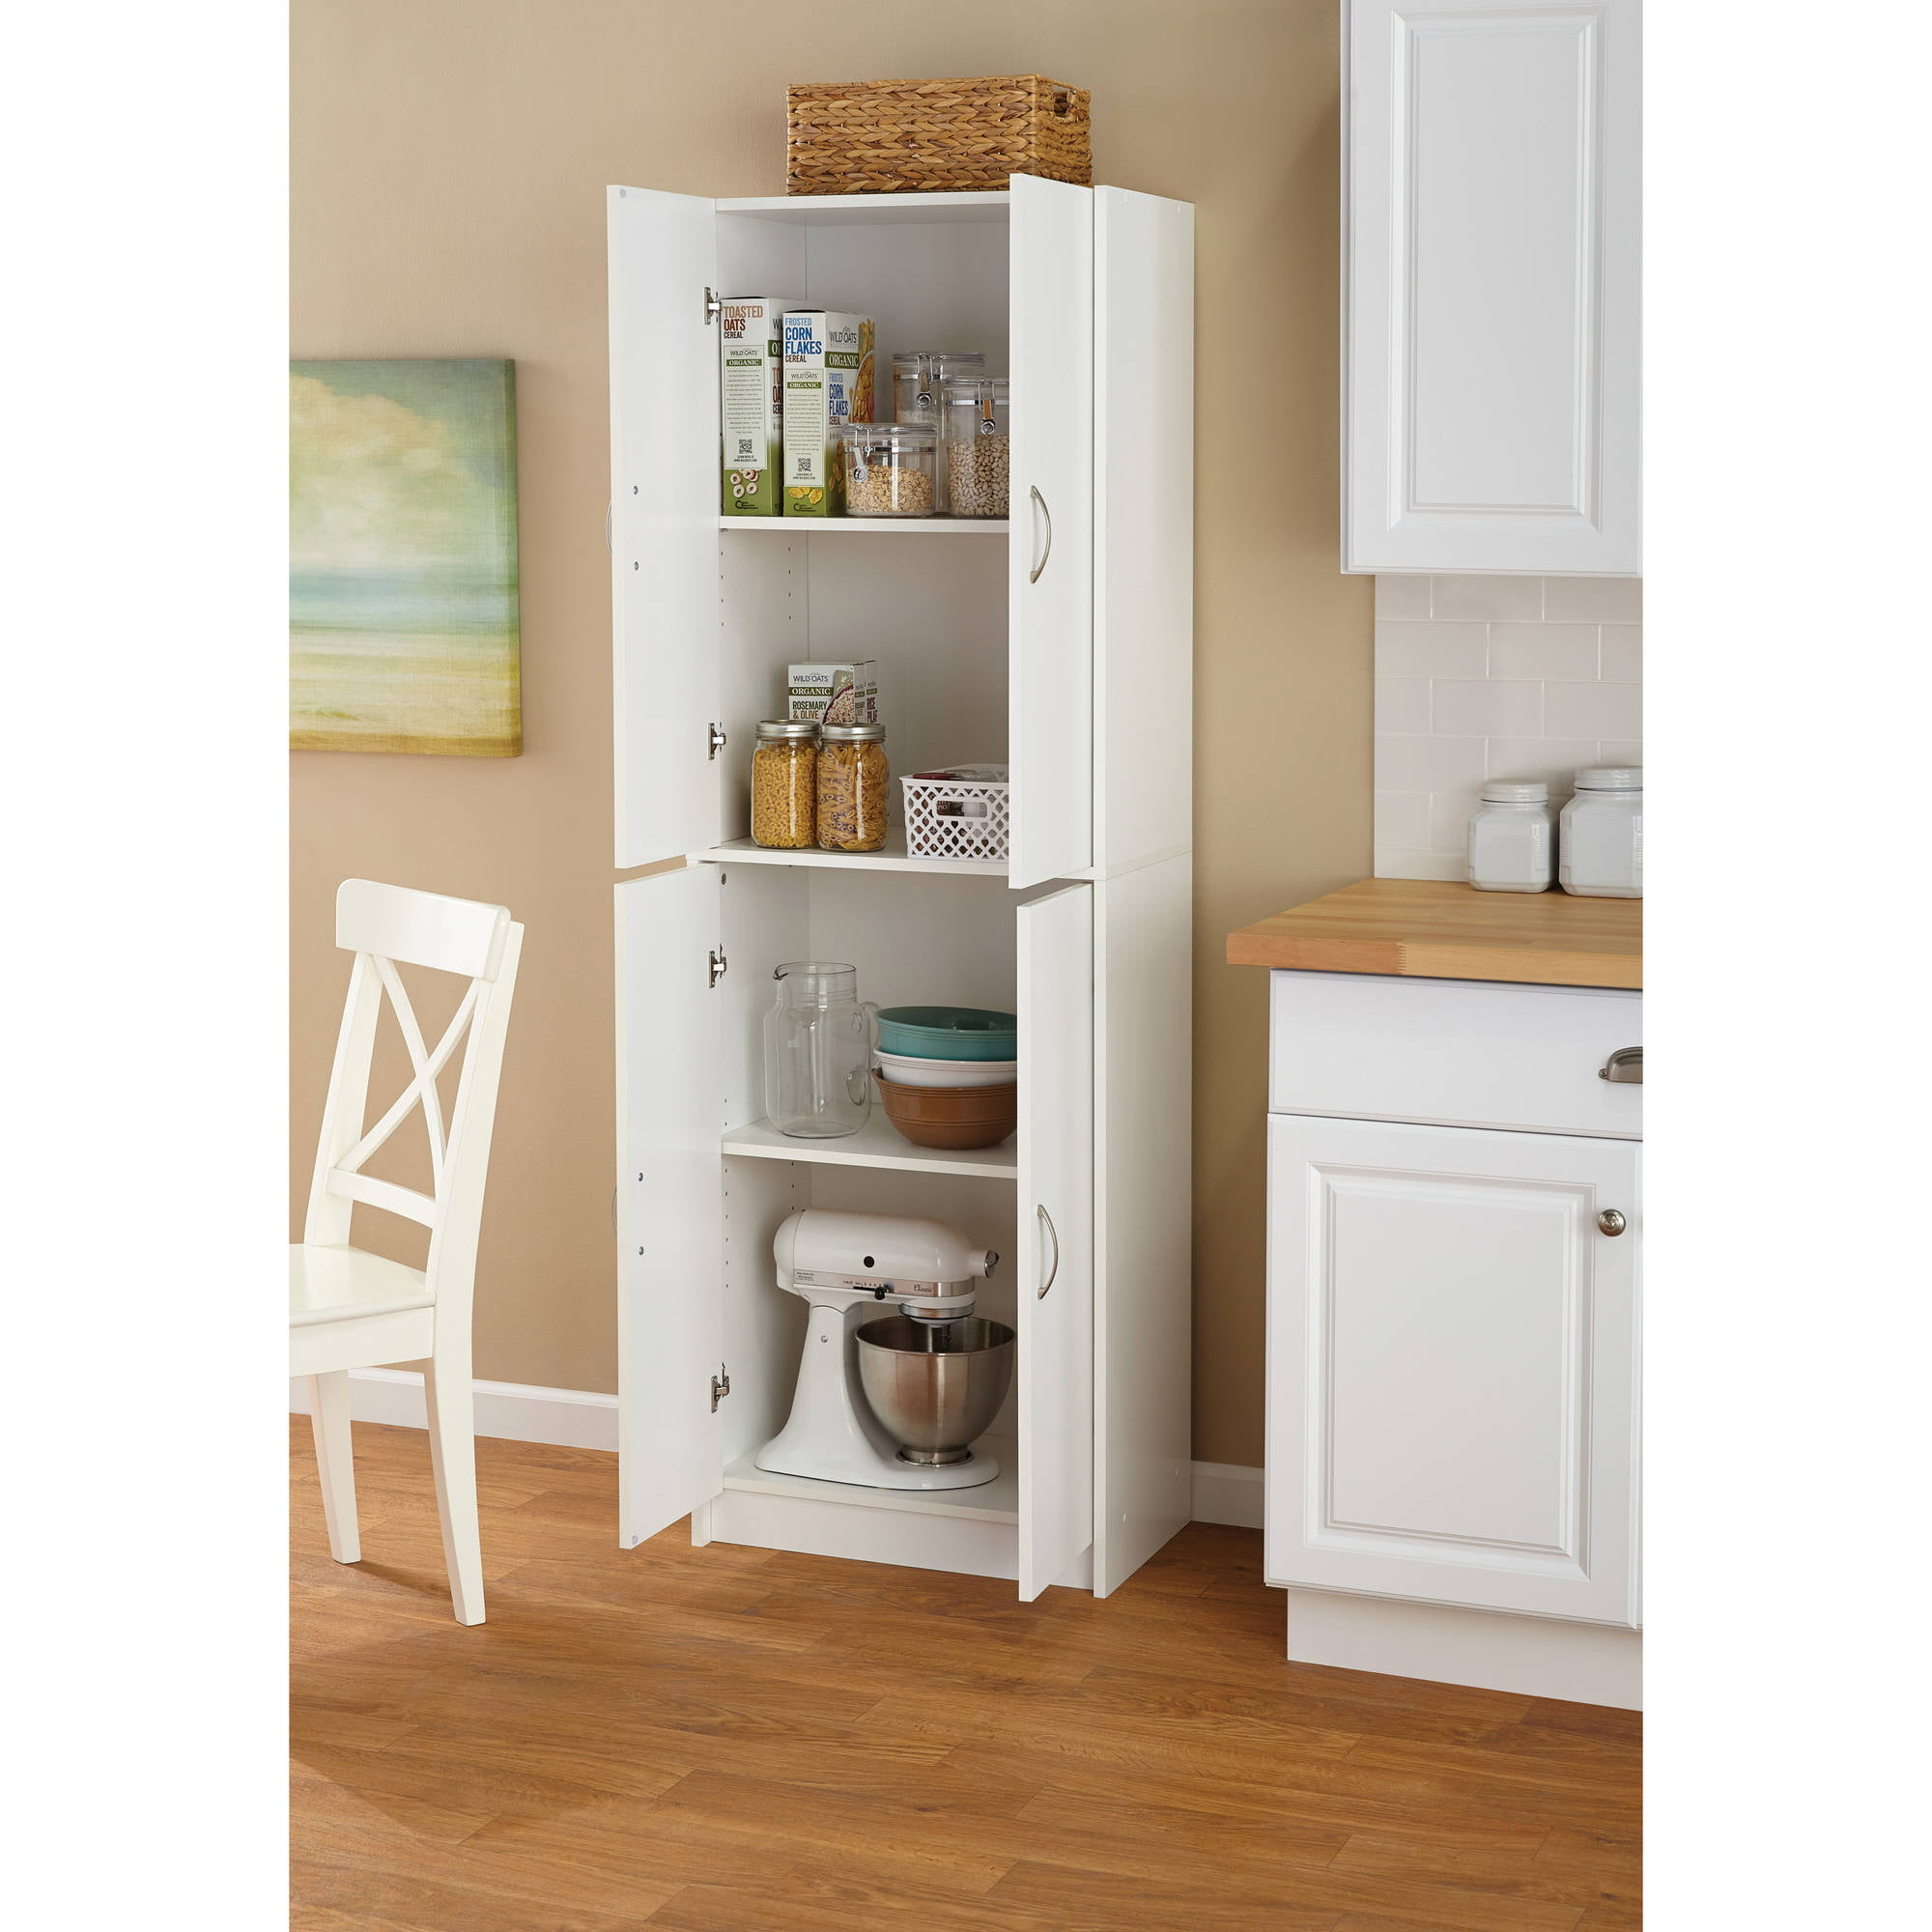 Tall Storage Cabinet Kitchen Cupboard Pantry Food Storage Organizer Shelf Wood Ebay